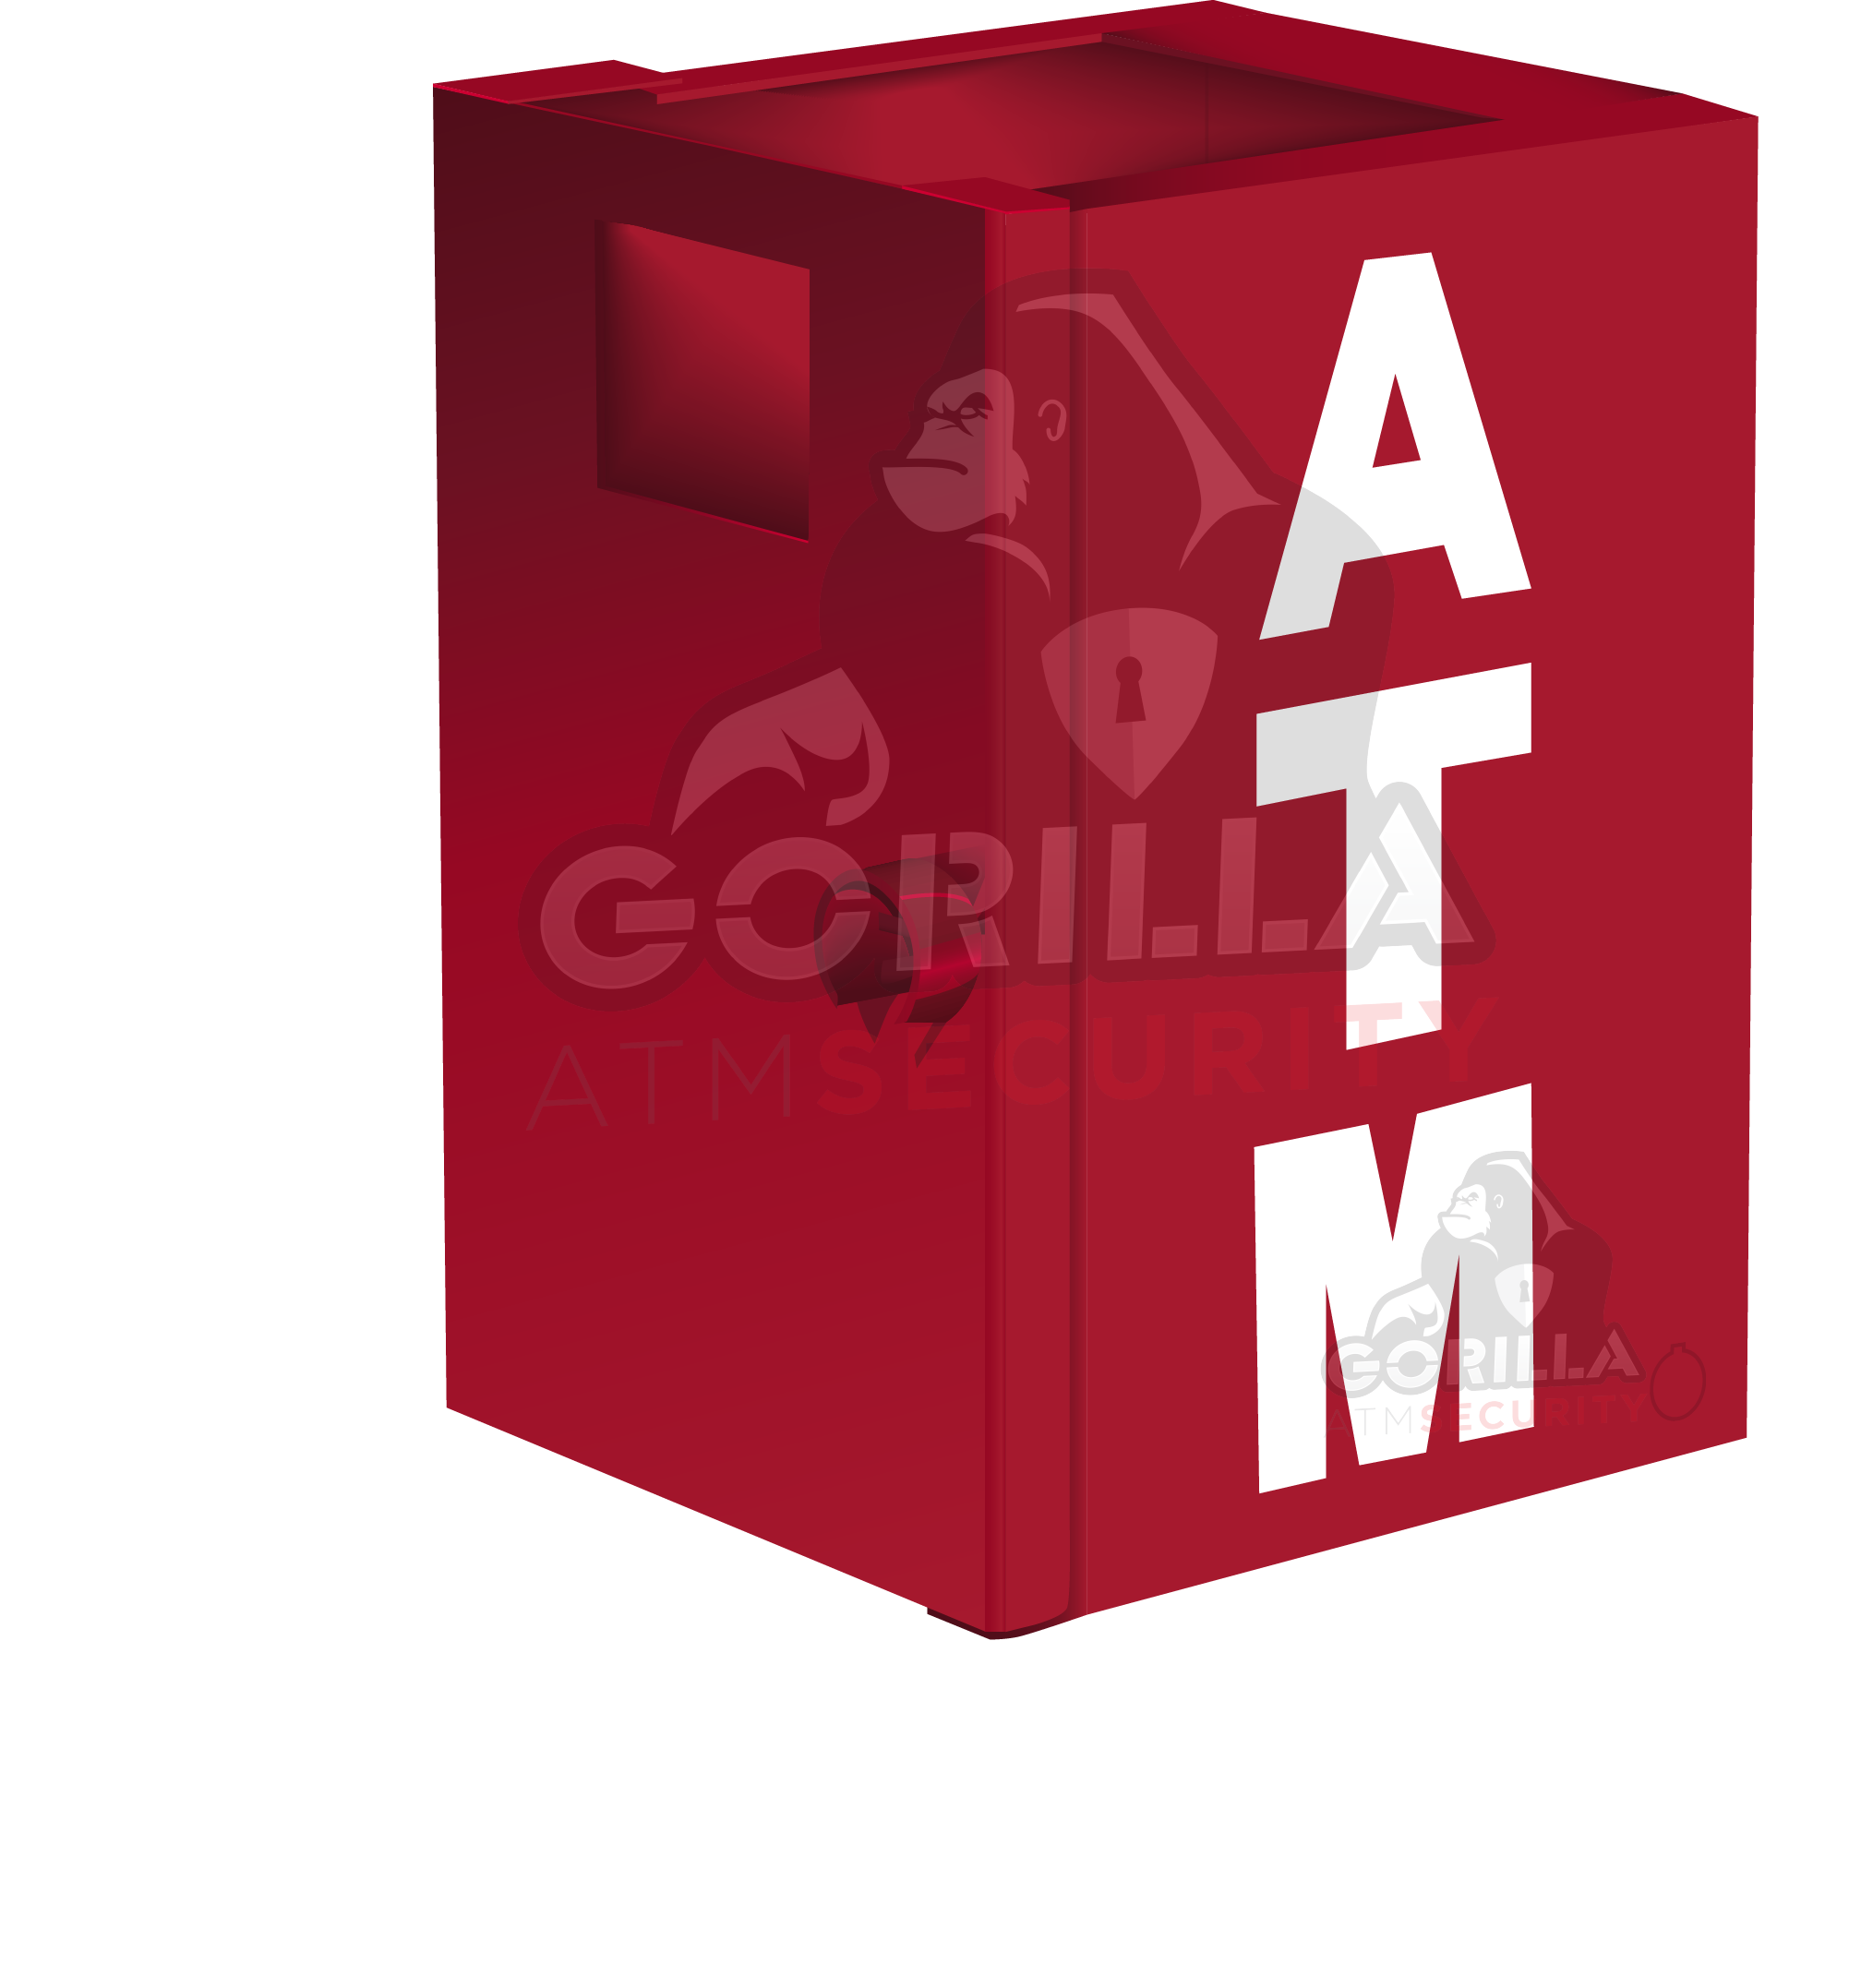 Safe drawing safety box. Gorilla atm security enclosures